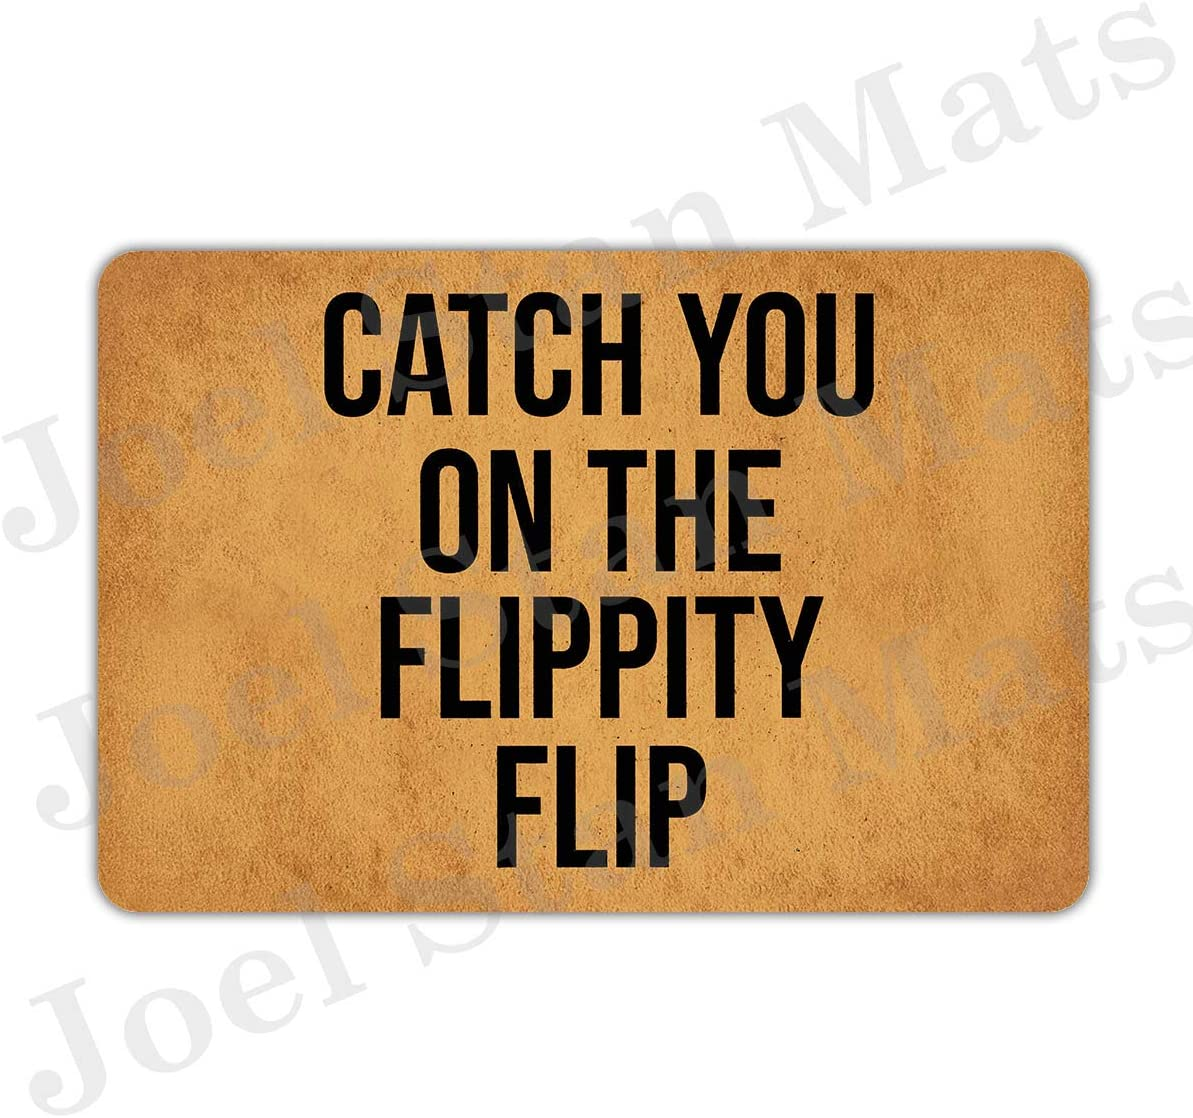 "Joelmat Catch You On The Flippity Flip Entrance Non-Slip Indoor Rubber Door Mats for Front Door/Bathroom/Garden/Kitchen/Bedroom 23.6""x 15.7"""